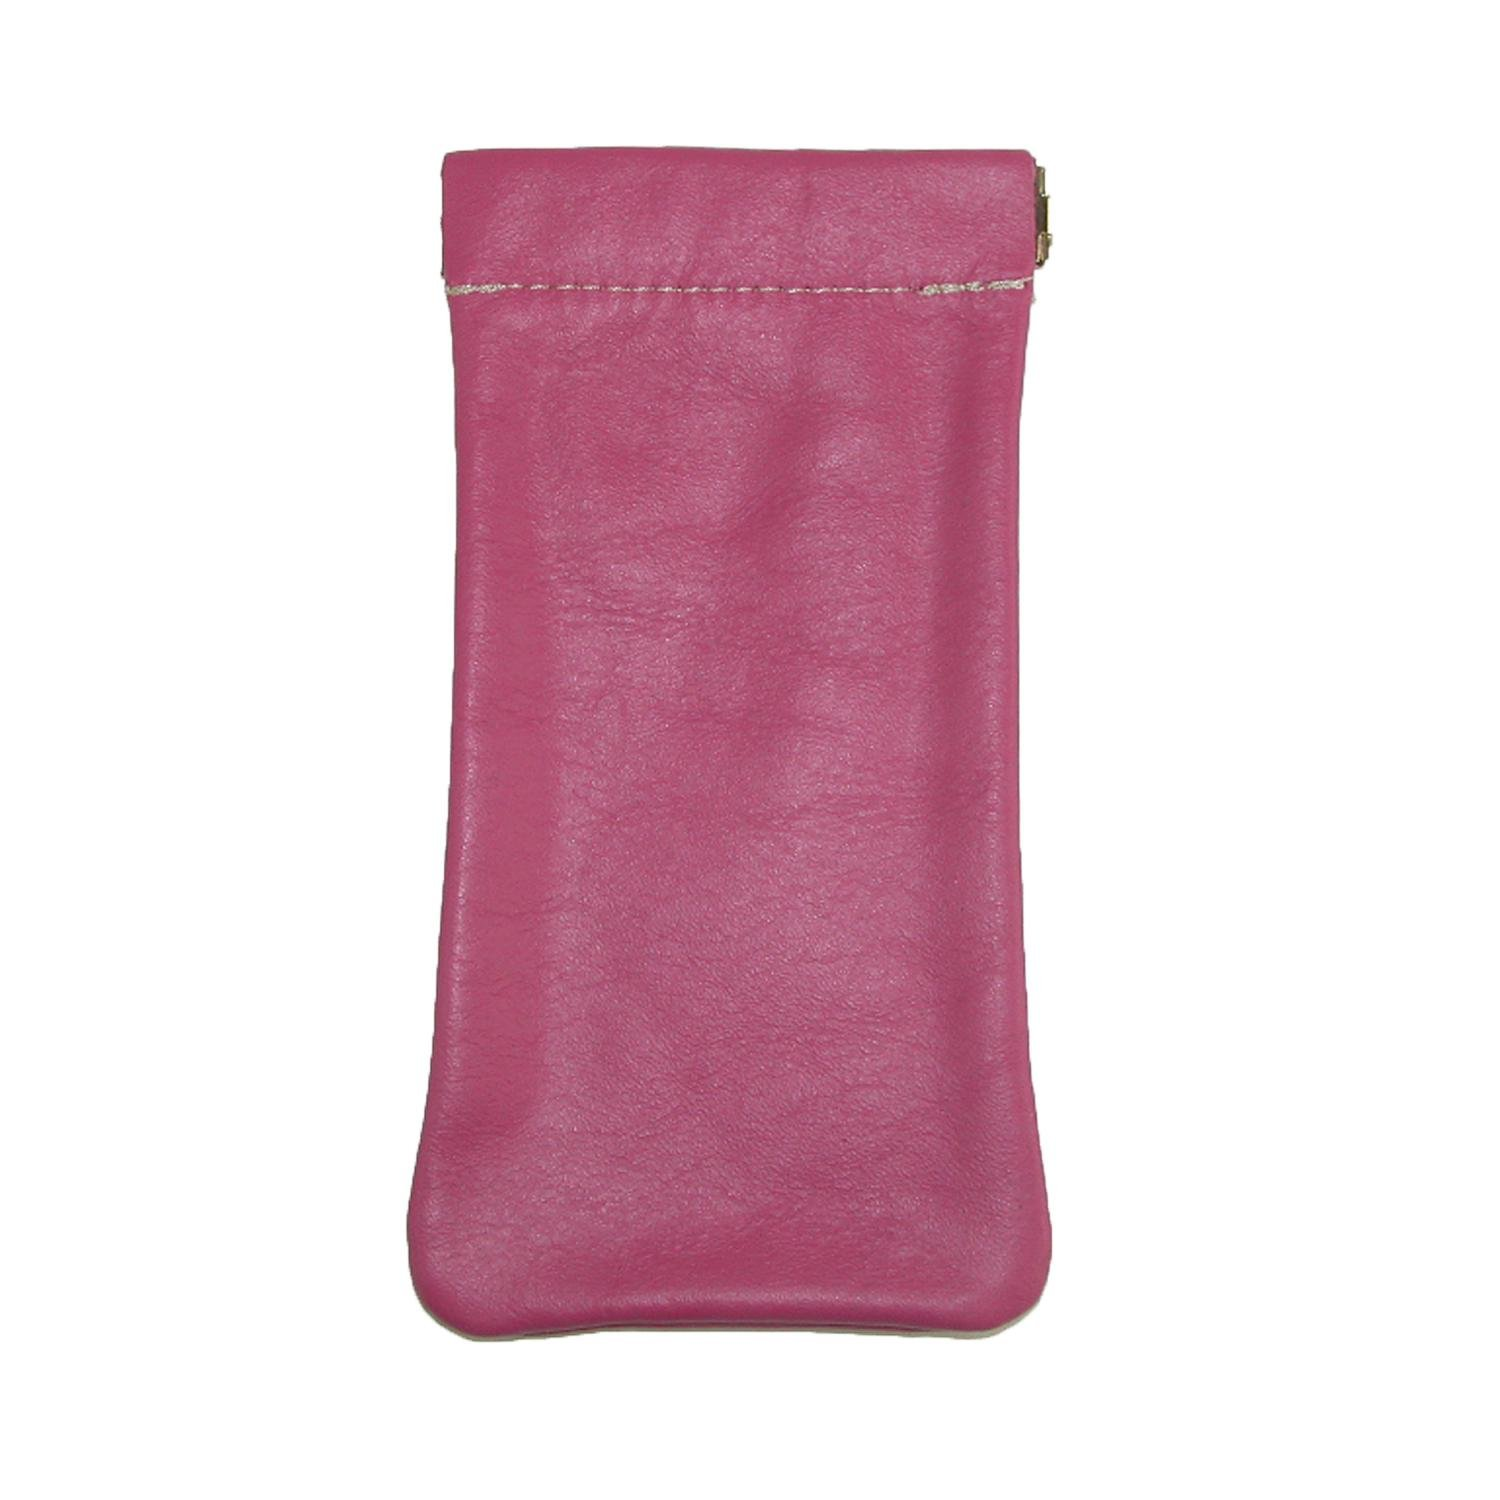 CTM Women's Leather Fashion Color Eyeglass Holder and Case, Pink